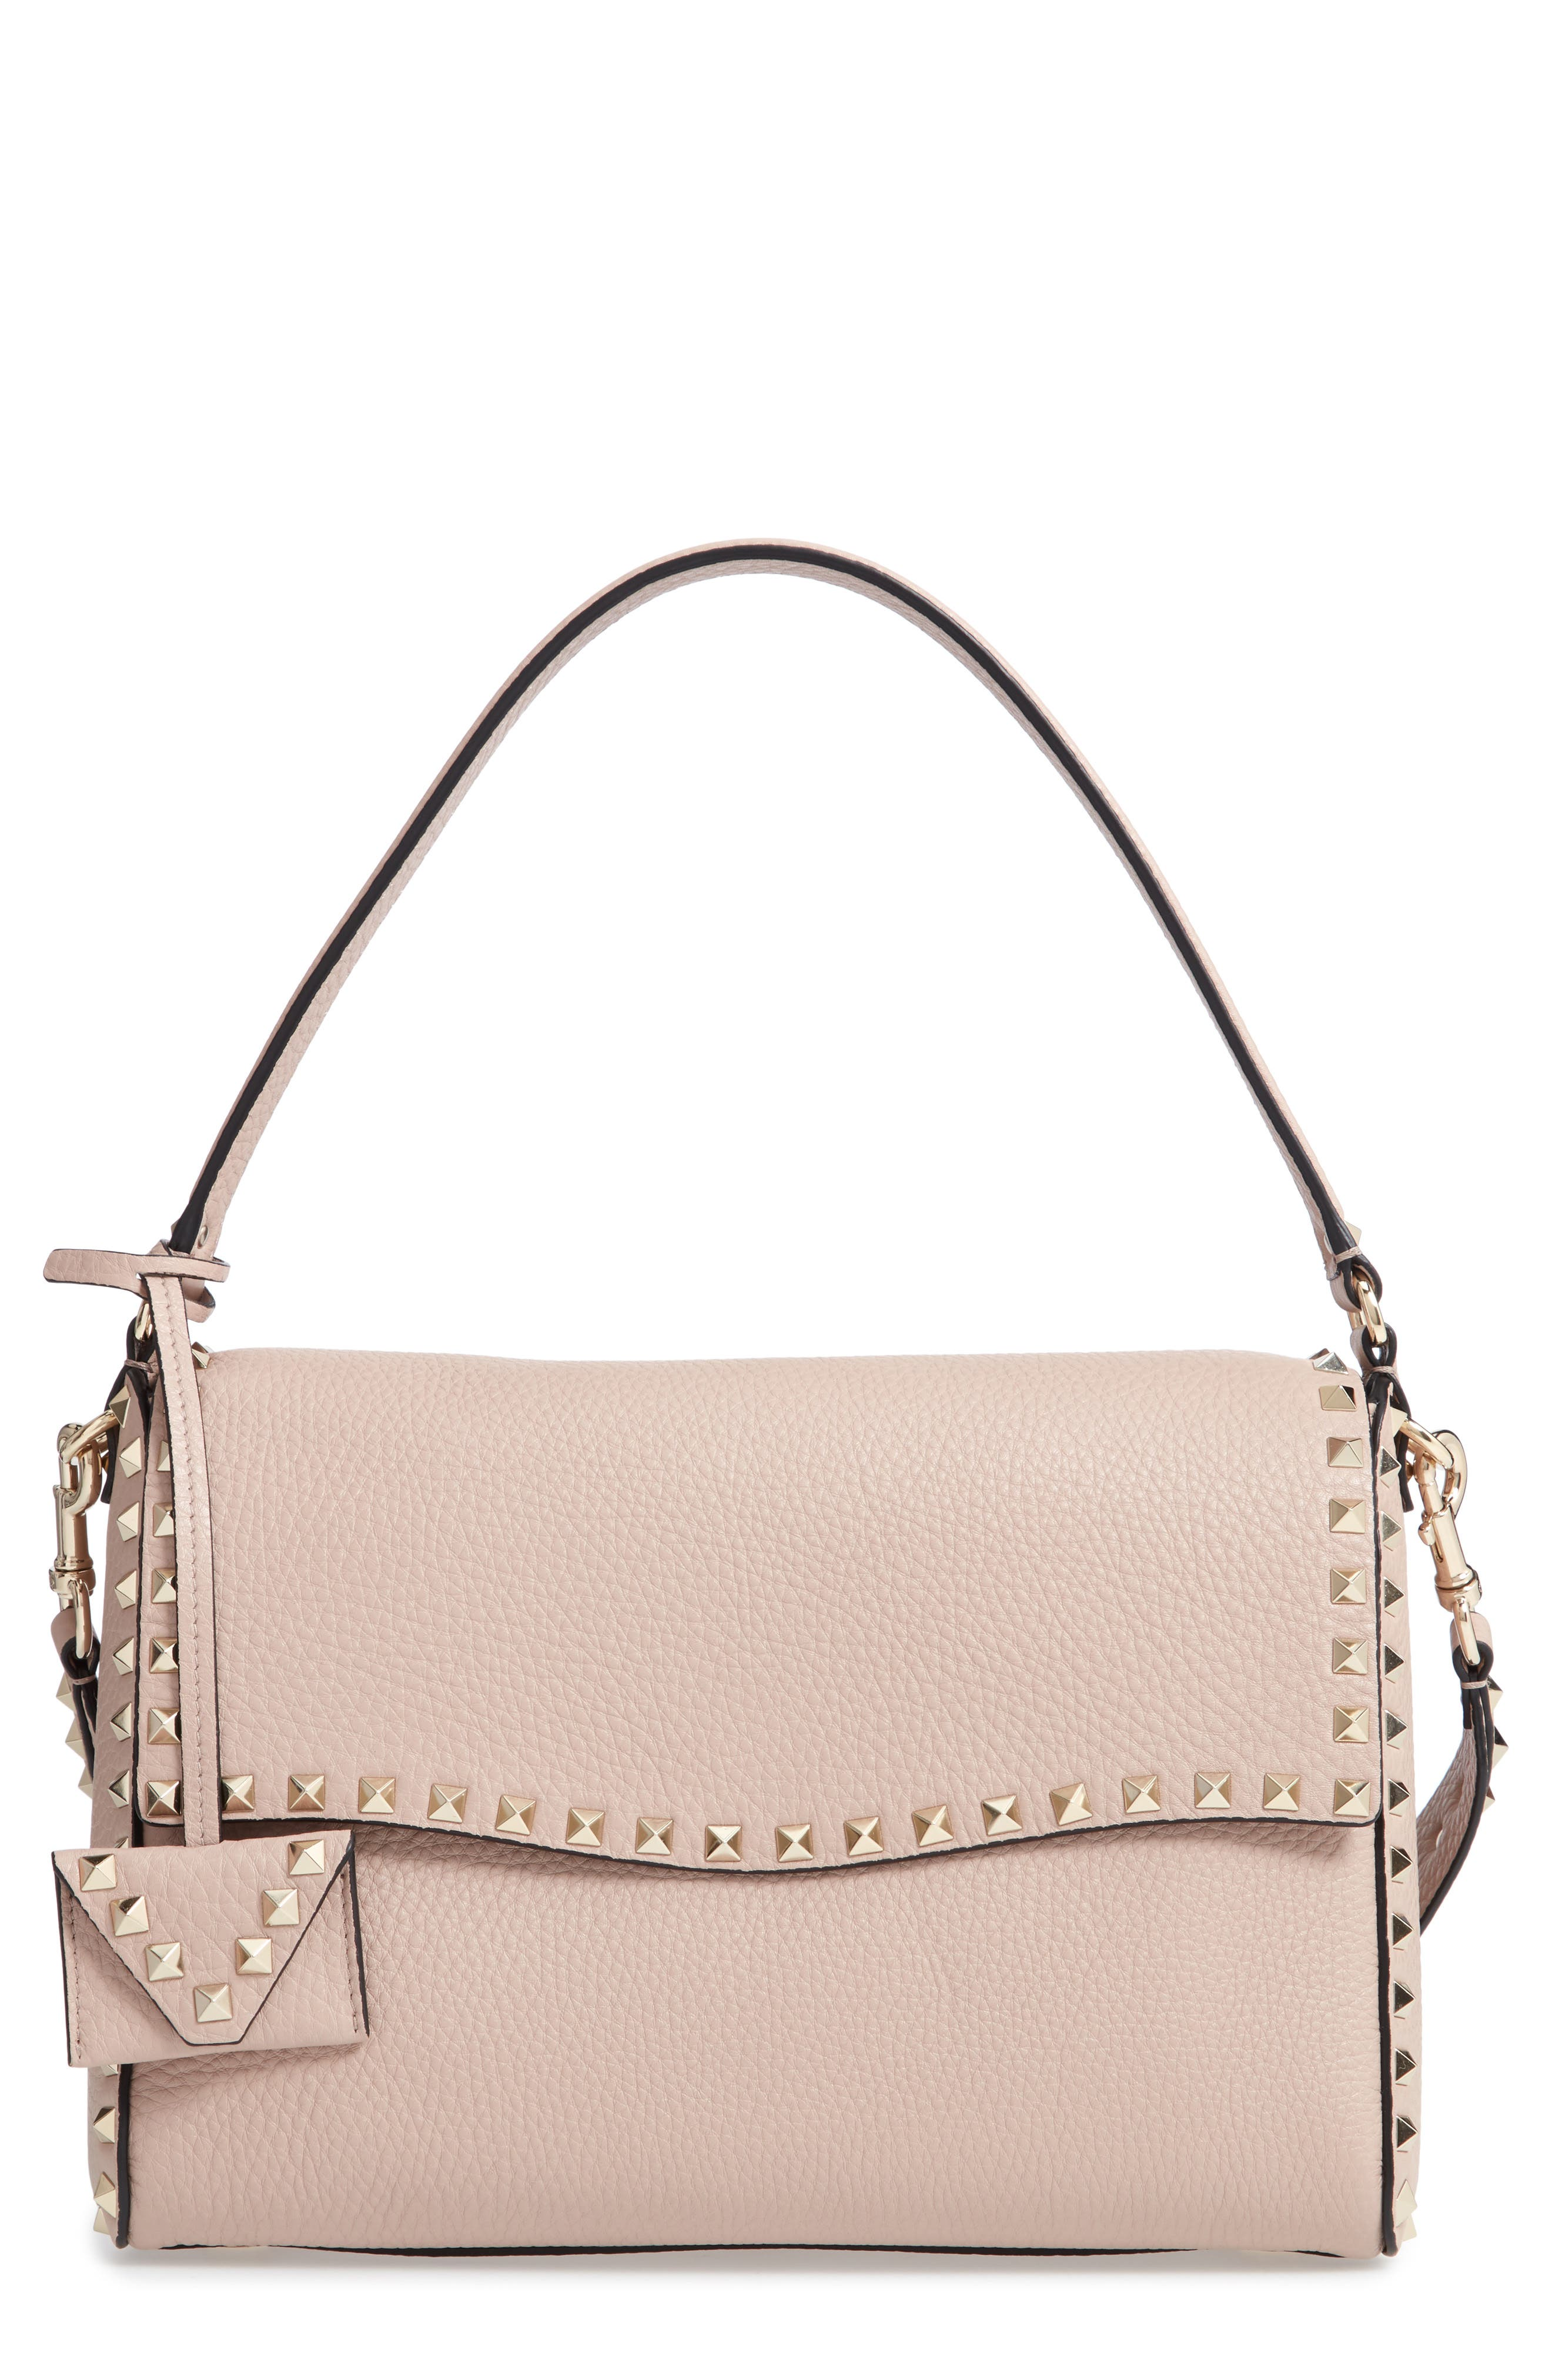 MEDIUM ROCKSTUD LEATHER SHOULDER BAG - BEIGE